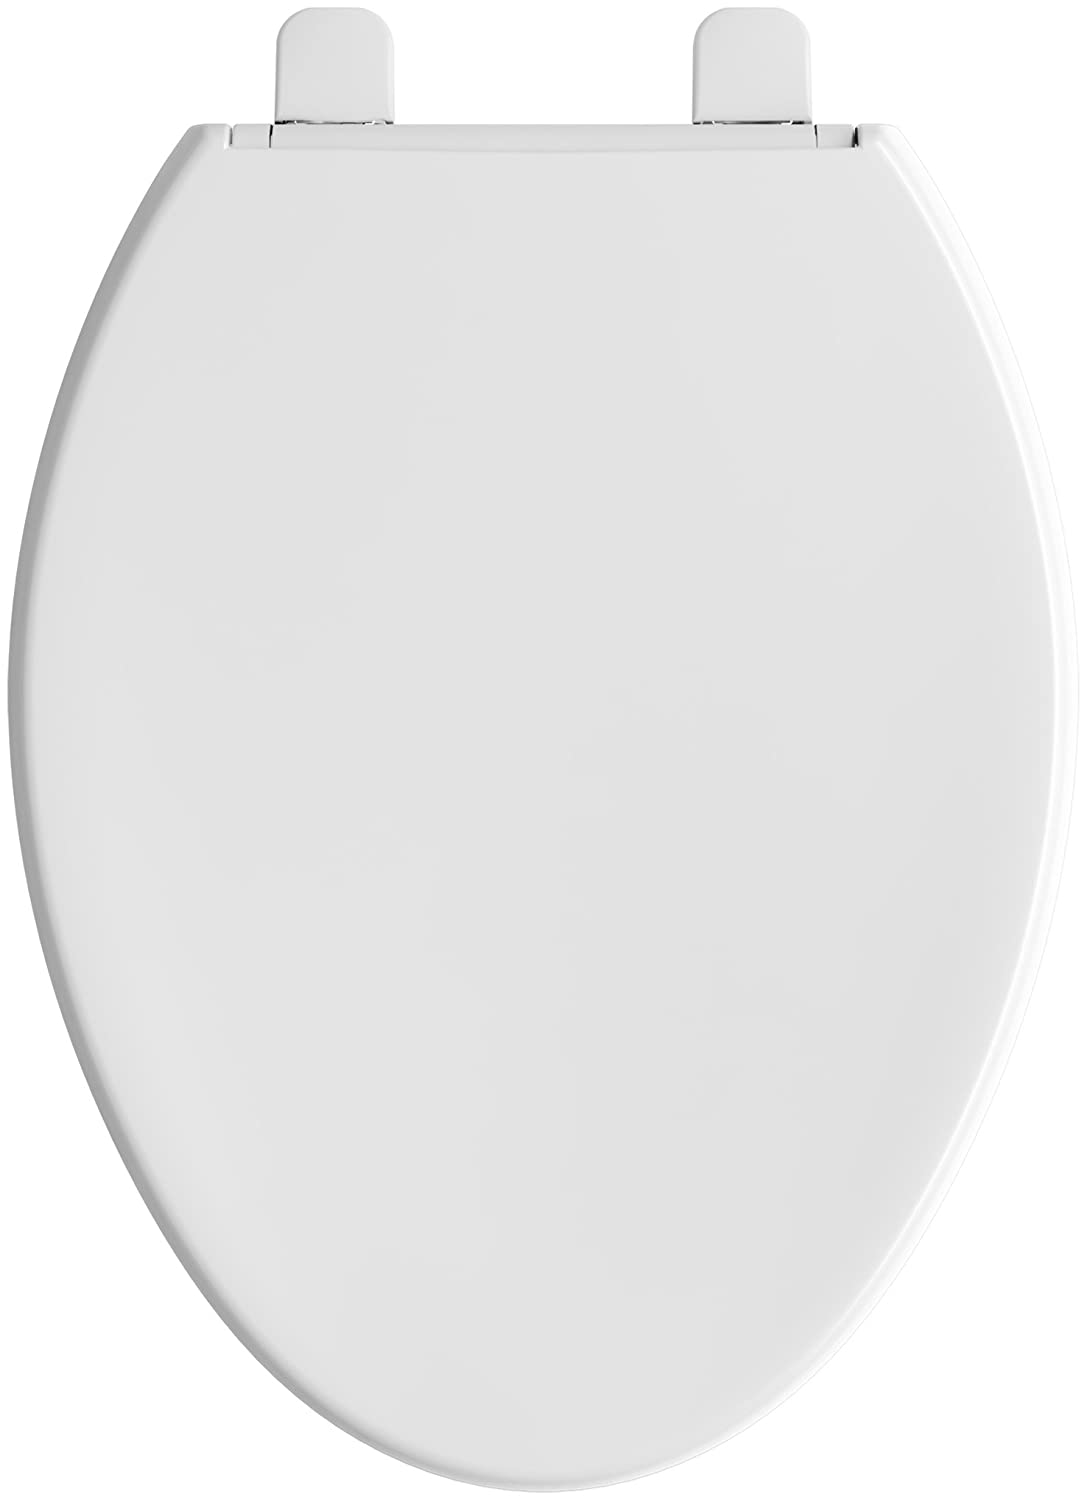 17 inch elongated toilet seat. KOHLER 75792 0 Reveal Nightlight Quiet Close with Grip Tight Elongated Front  Toilet Seat White Amazon com